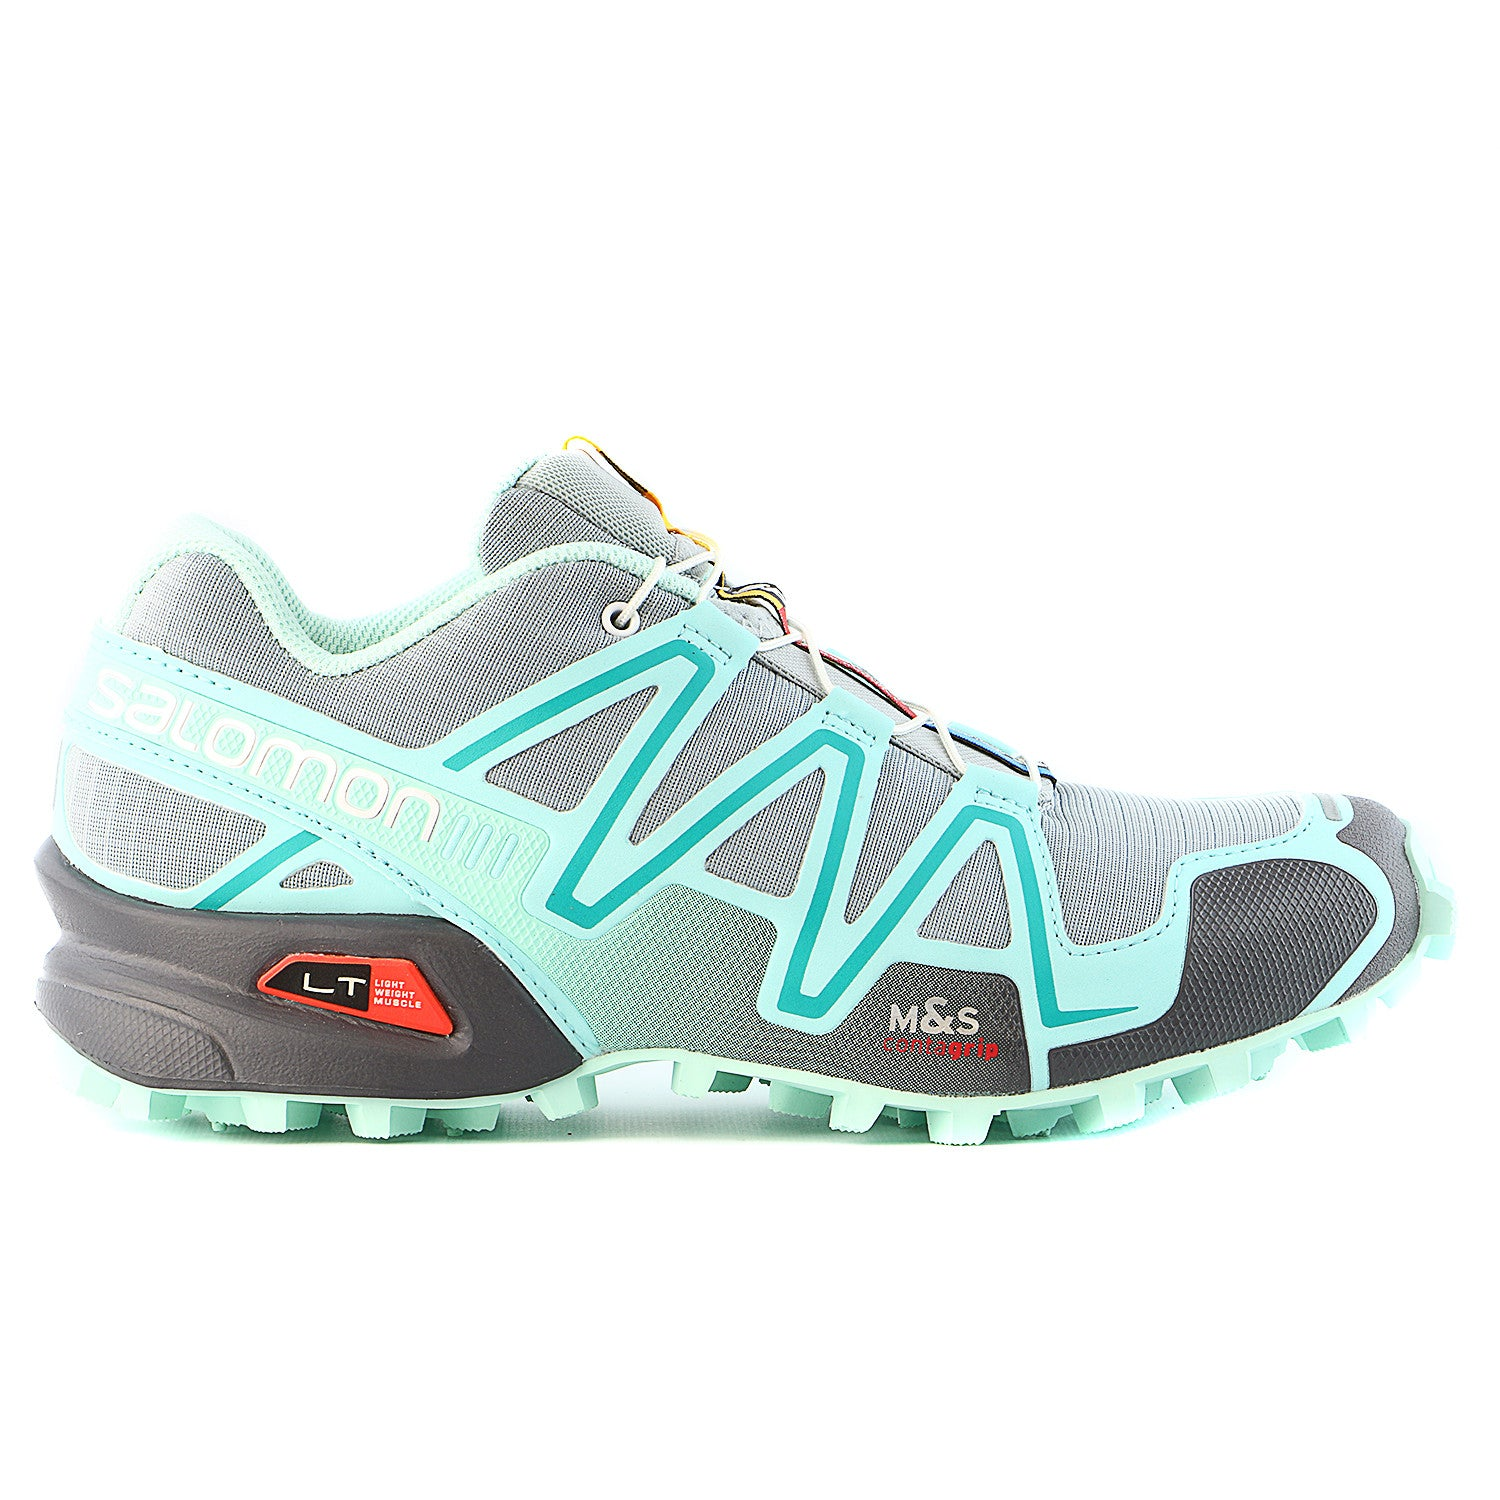 san francisco e1886 eeab8 Salomon Speedcross 3 Trail Running Sneaker Shoe - Womens